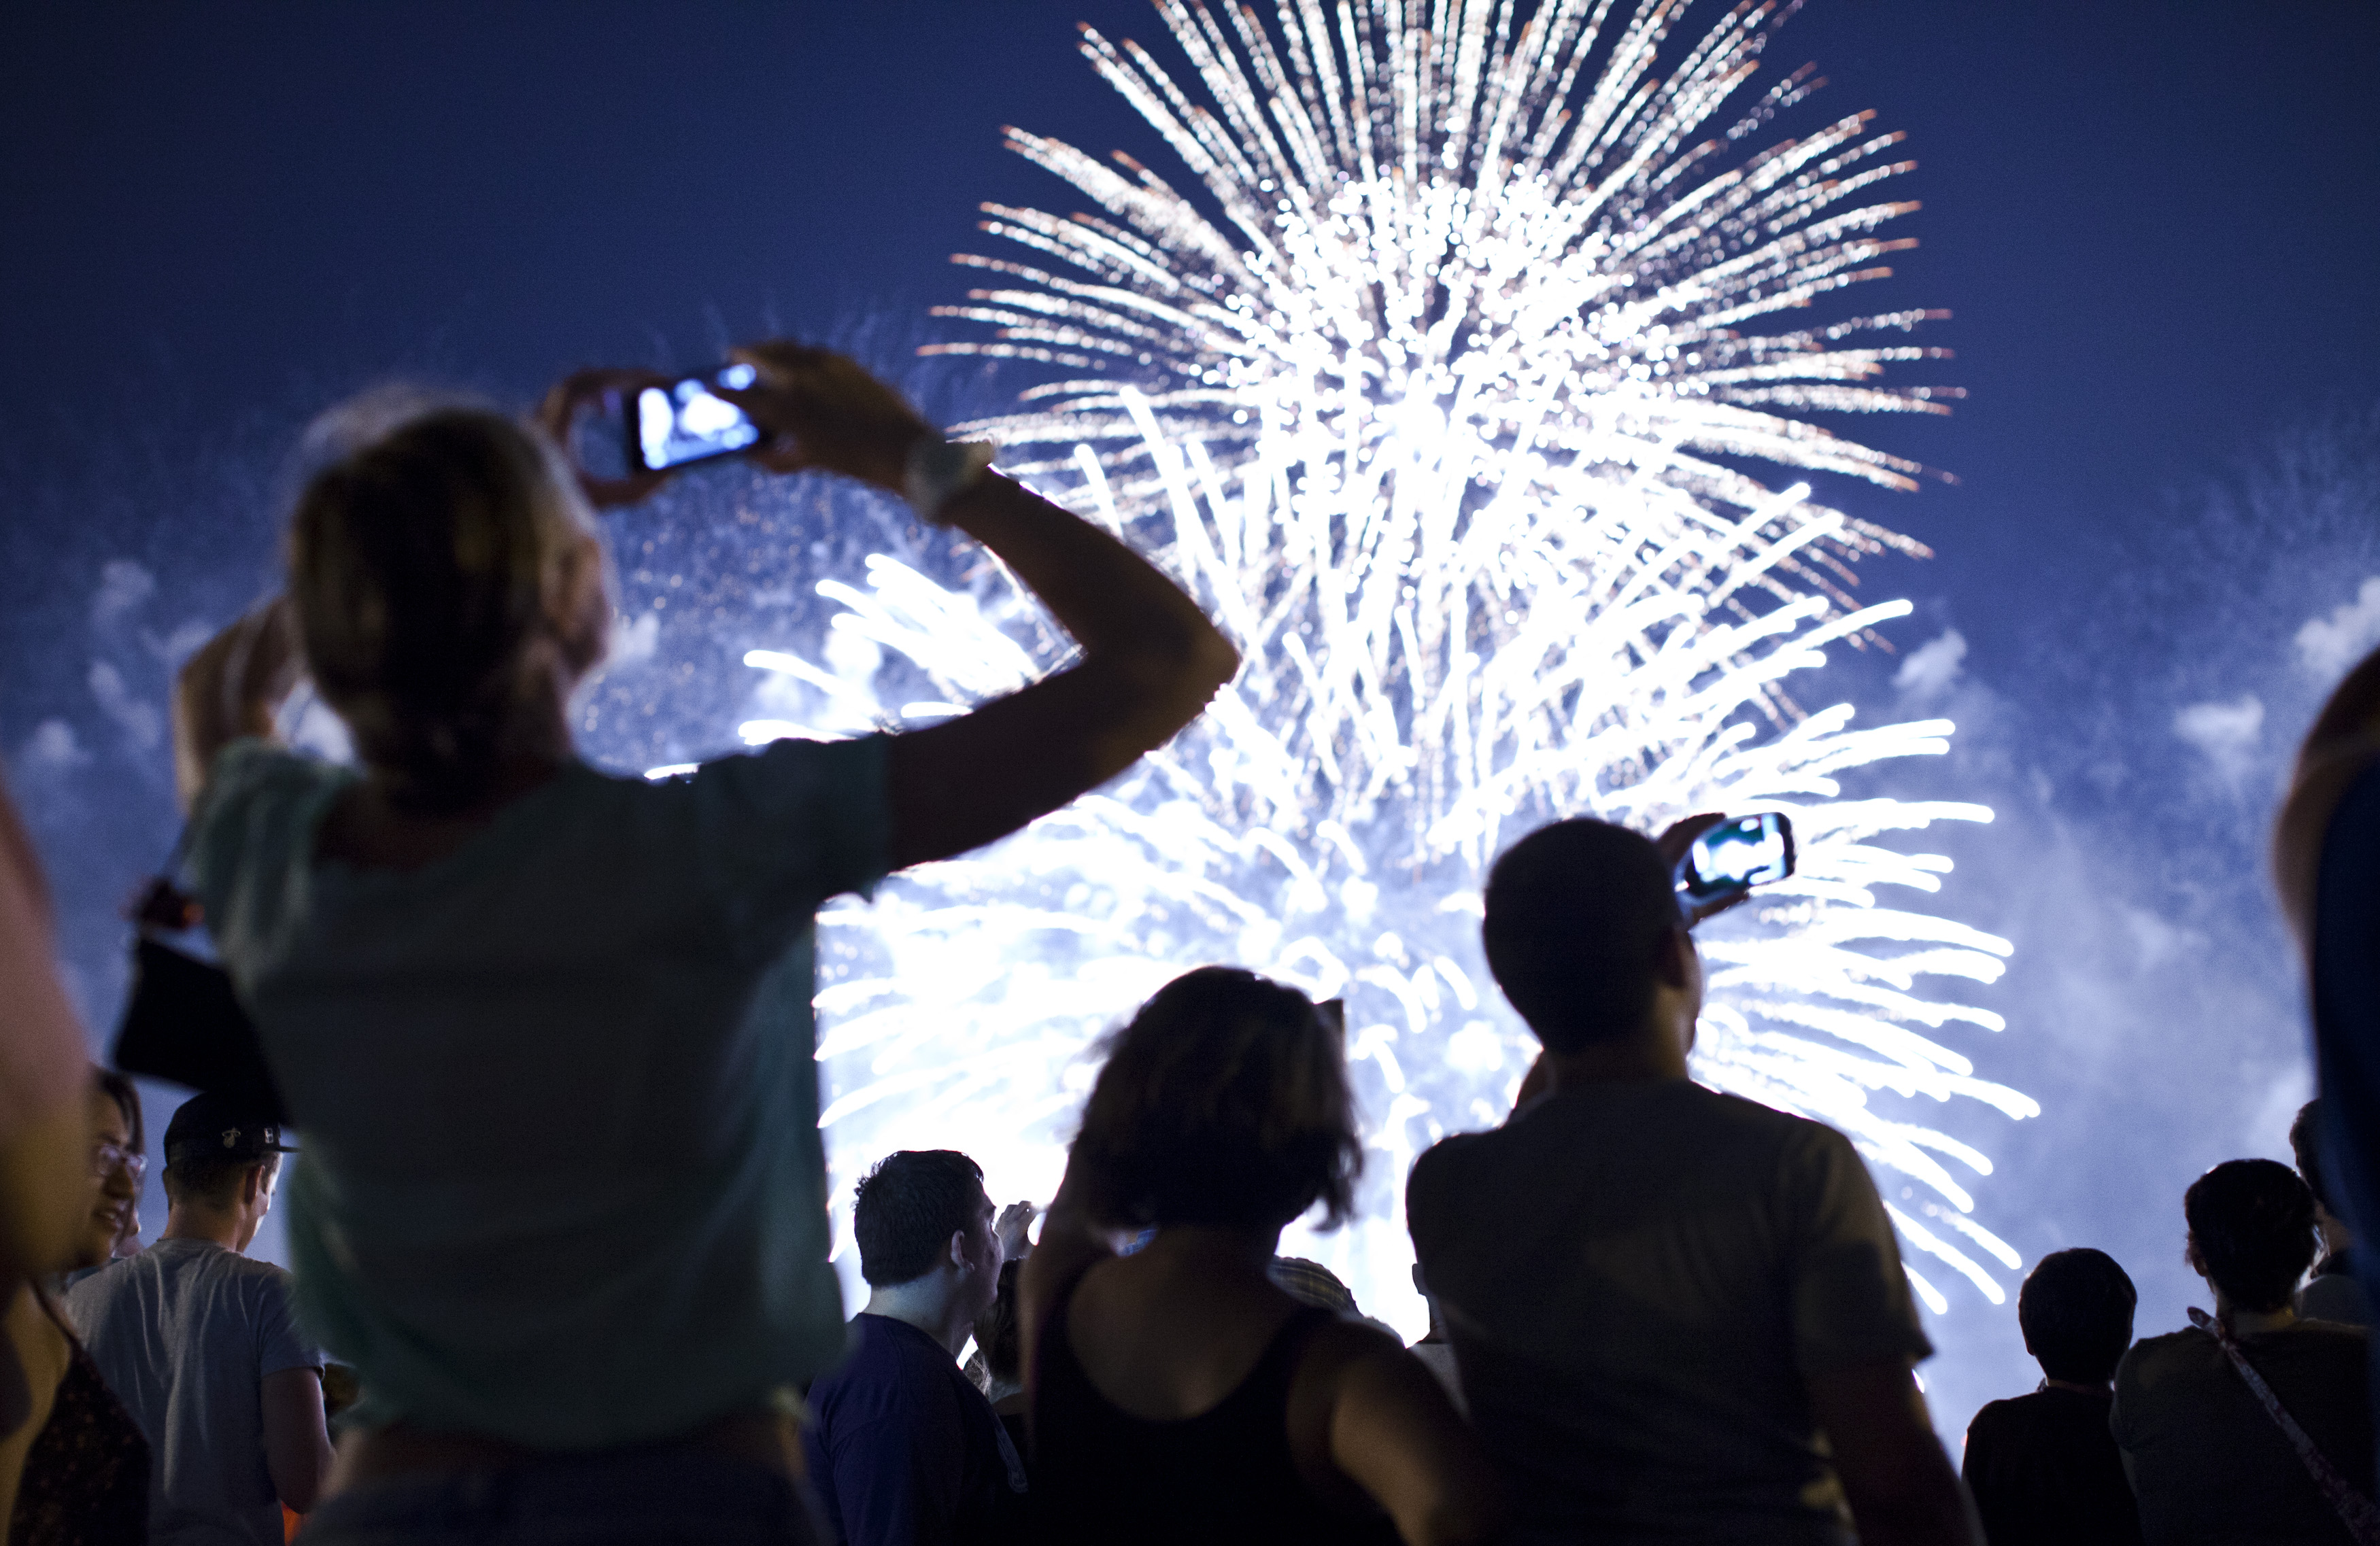 People watch fireworks light up the sky over New York City on July 4, 2013 in Weehawken, New Jersey.